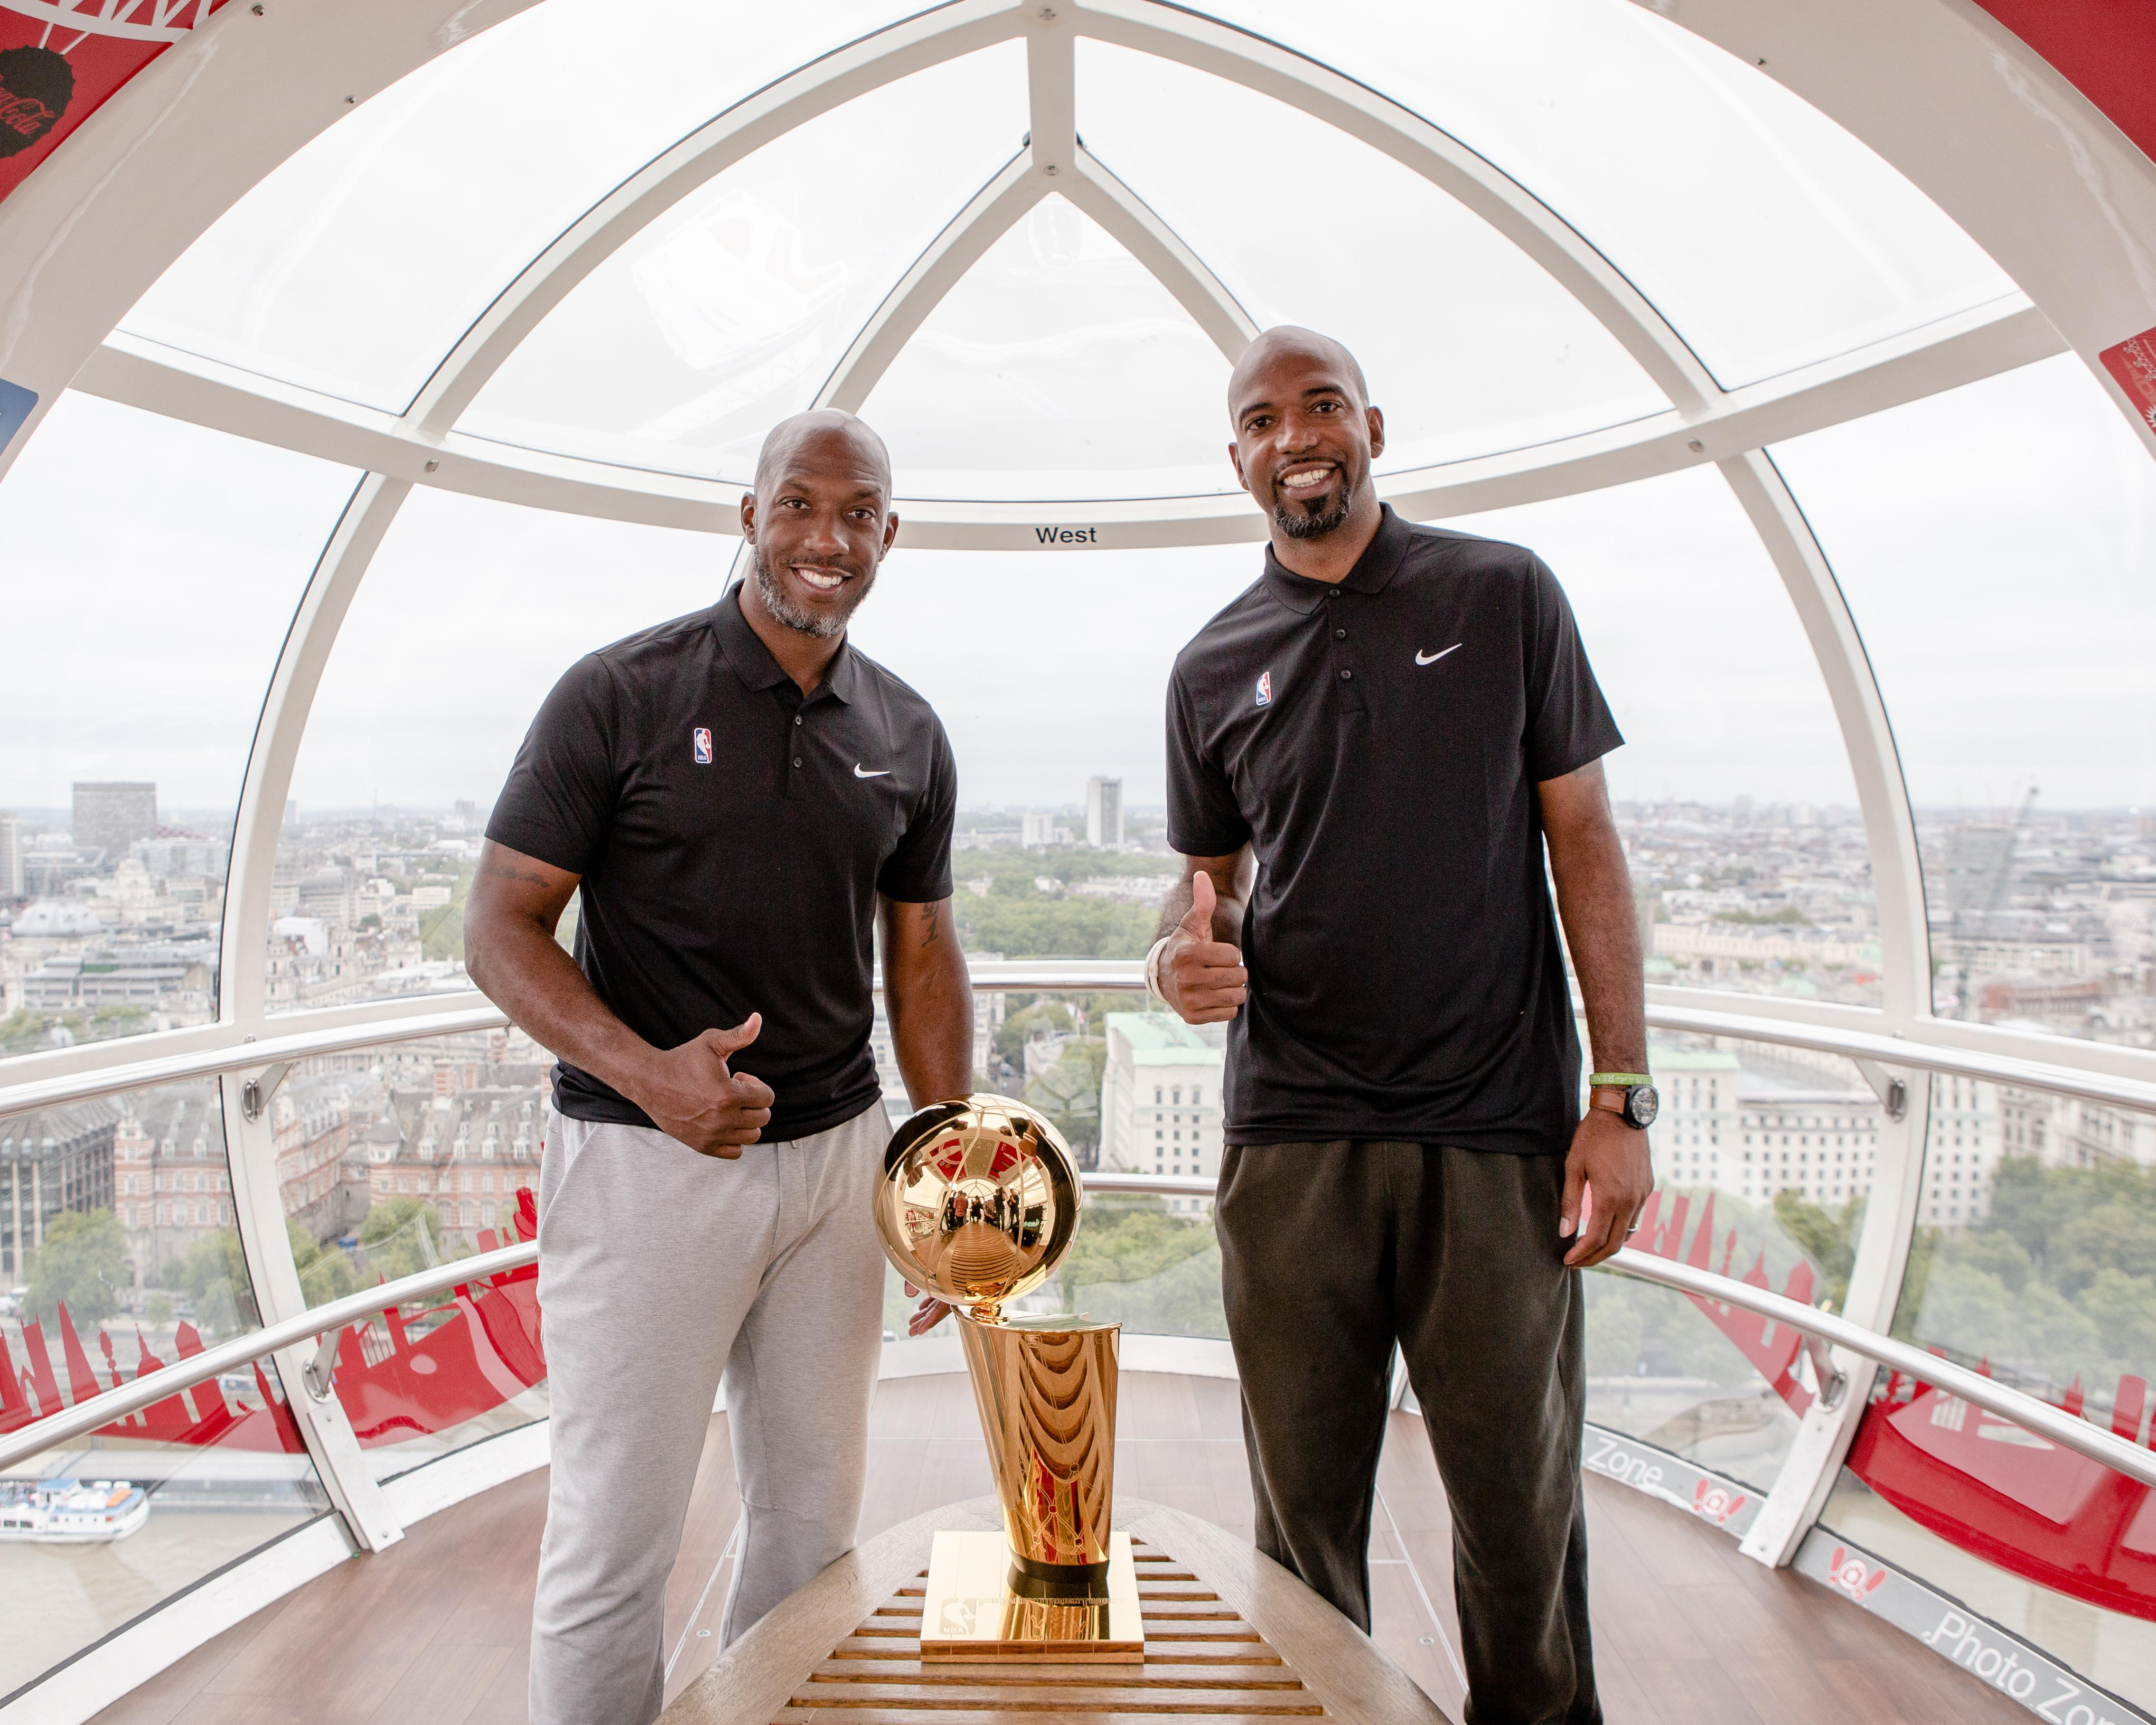 Hamilton and Billups took a trip on the London Eye with the Larry O'Brien trophy